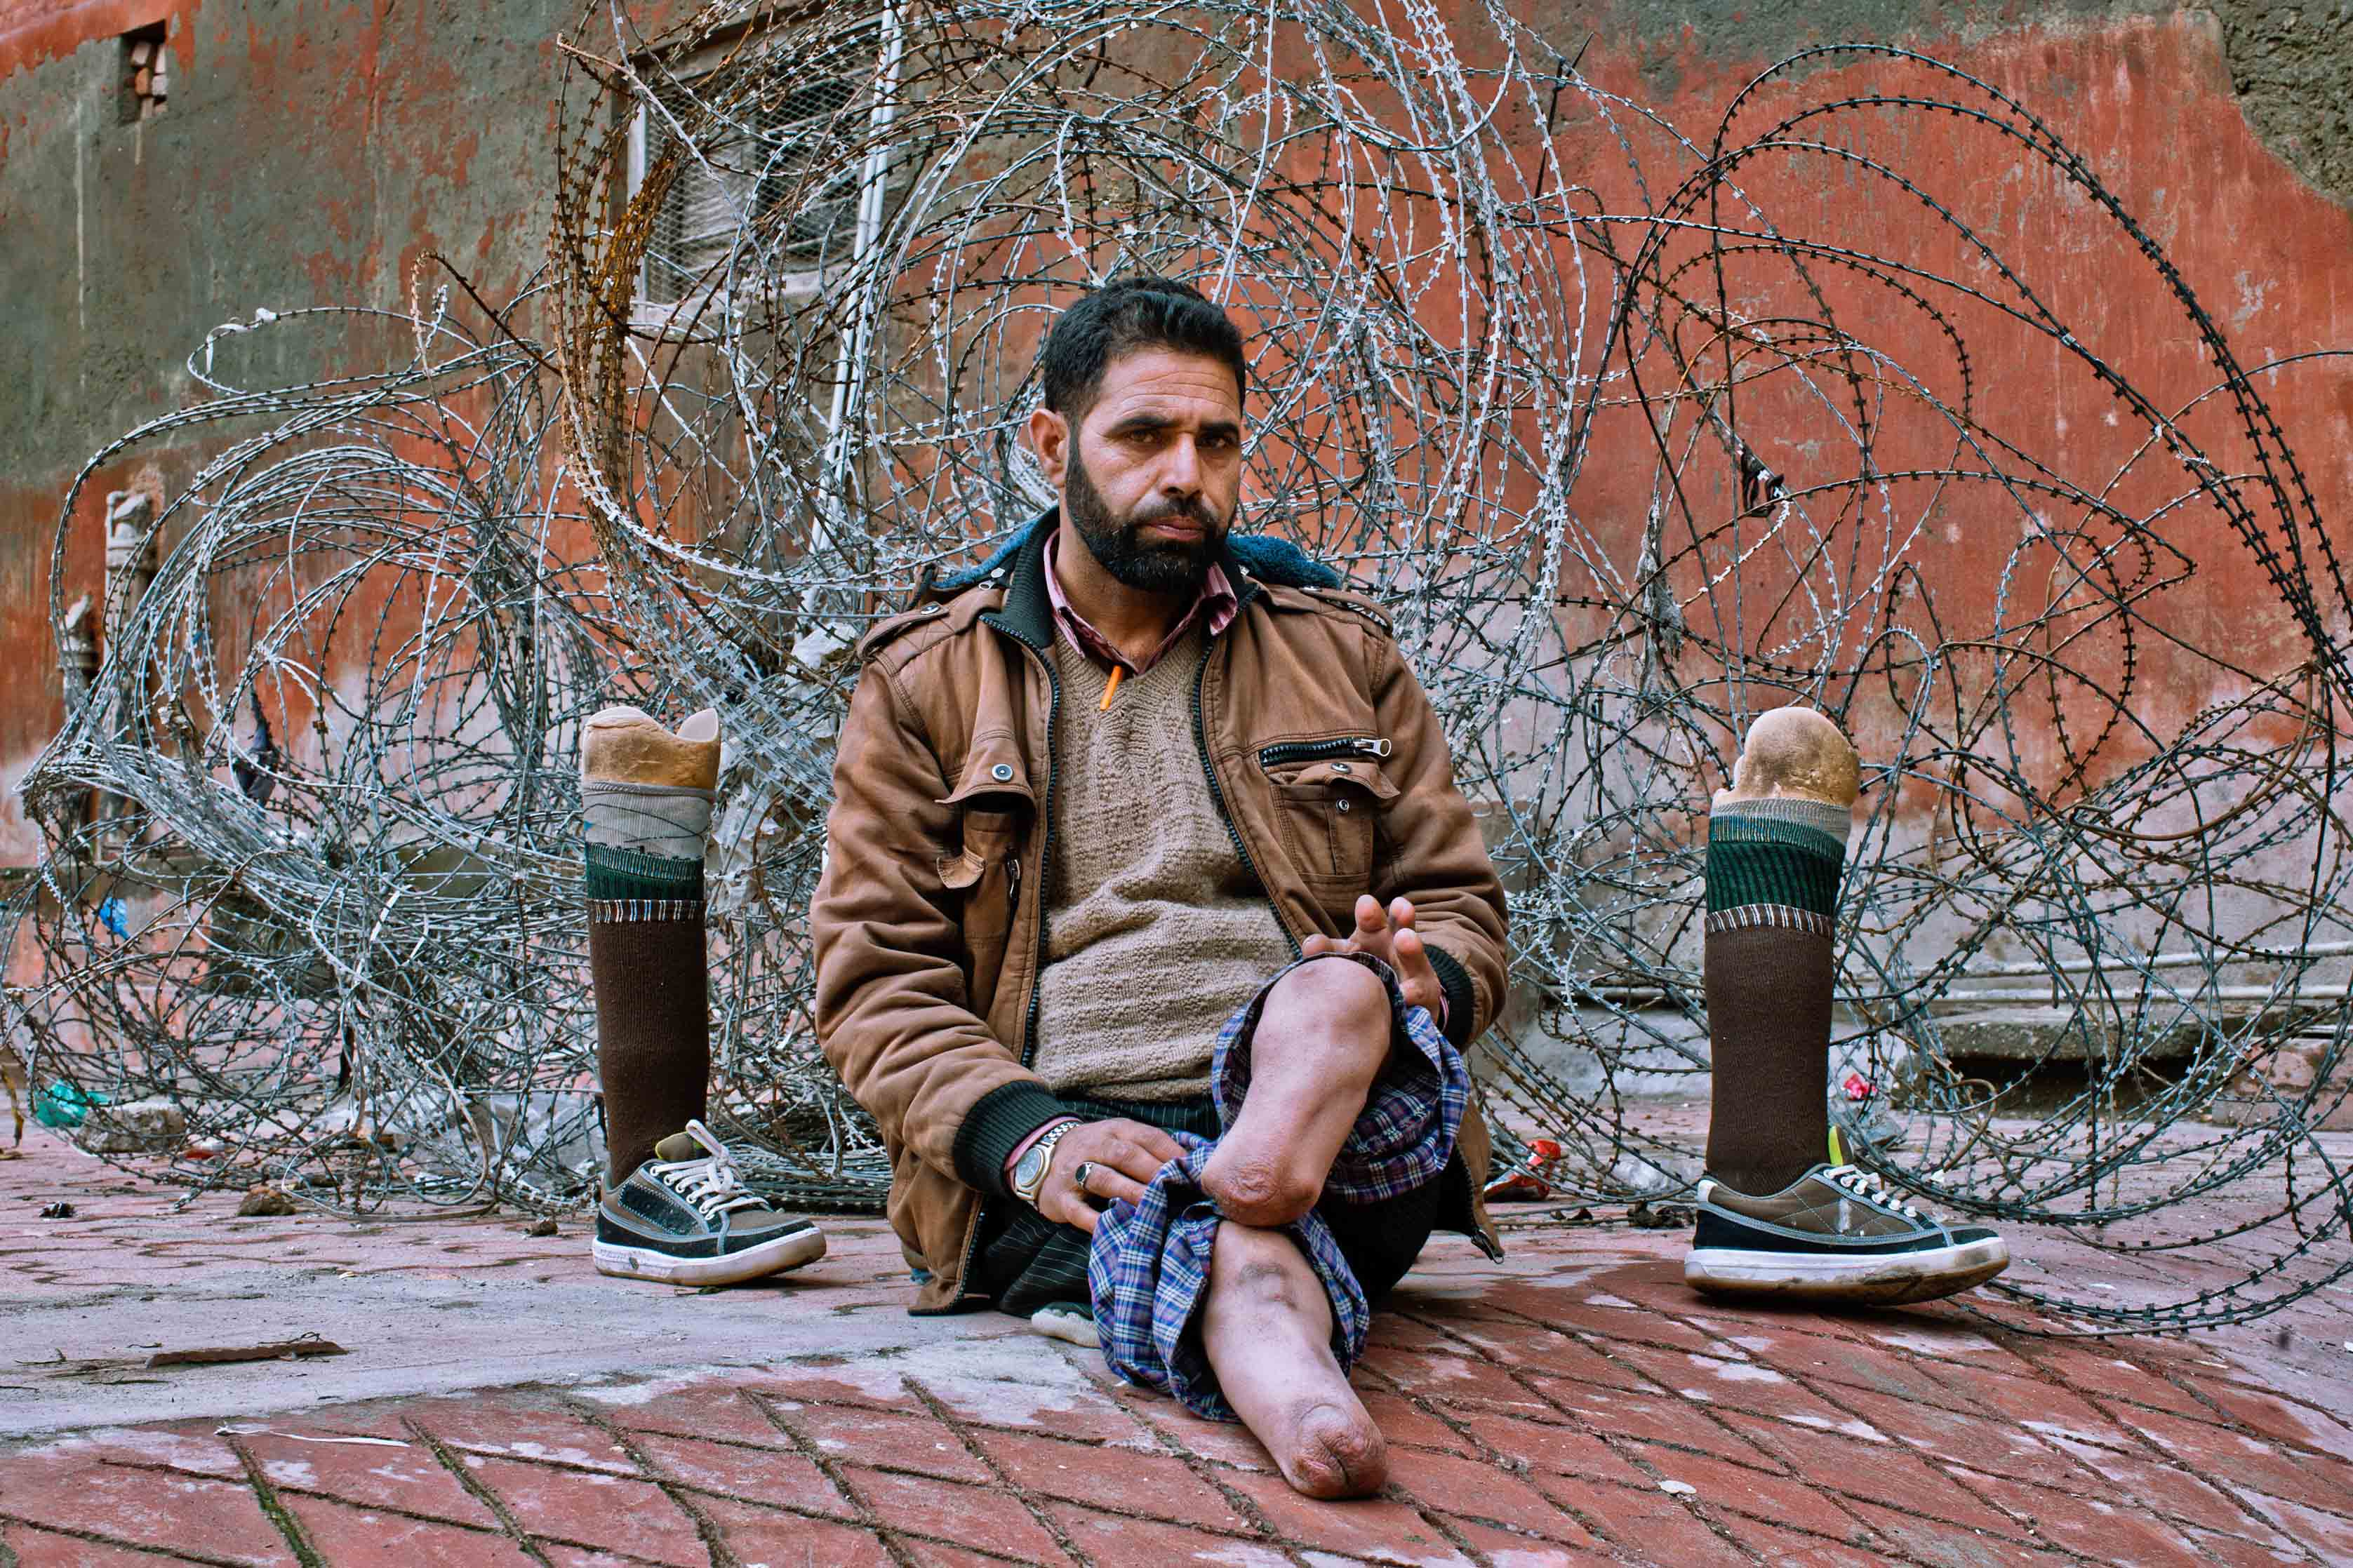 19 October 2016: Torture victim Nazir Ahmad Sheikh, 46, photographed with his prosthetic legs in Srinagar, the summer capital of Indian-administered Kashmir. North Kashmir resident Sheikh says despite having no militancy or criminal record, he was picked up and tortured by the Indian army's 14 Dogra Regiment in December 1994. Sheikh lost four fingers and both feet, and had to sell ancestral land to buy artificial limbs. (Photograph by Yawar Nazir/Getty Images)